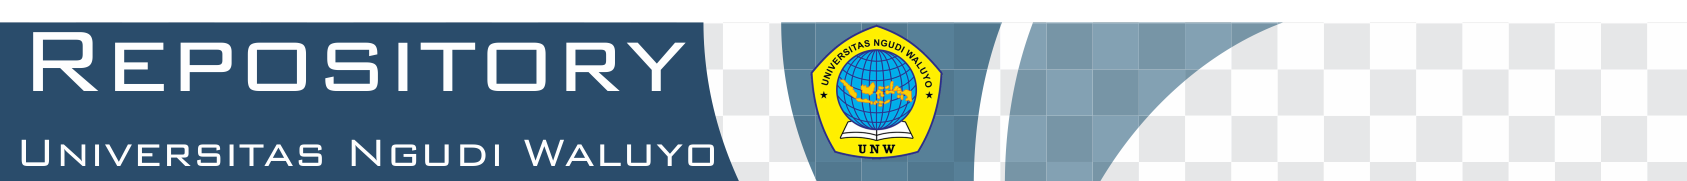 Repository Universitas Ngudi Waluyo